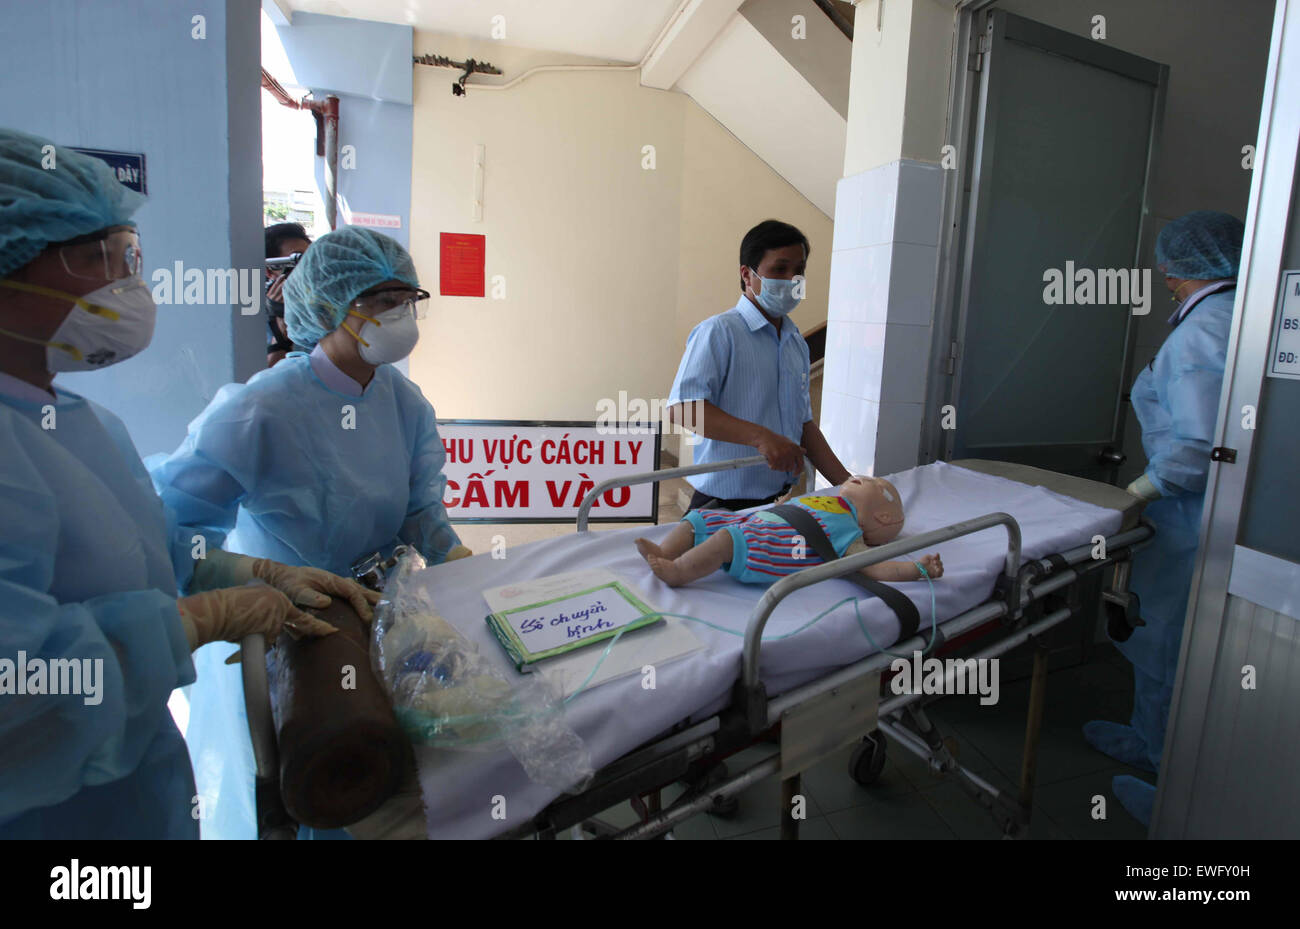 (150625) -- HO CHI MINH CITY, June 25, 2015 (Xinhua) -- Medical staff participate in the emergency drill in anticipation - Stock Image